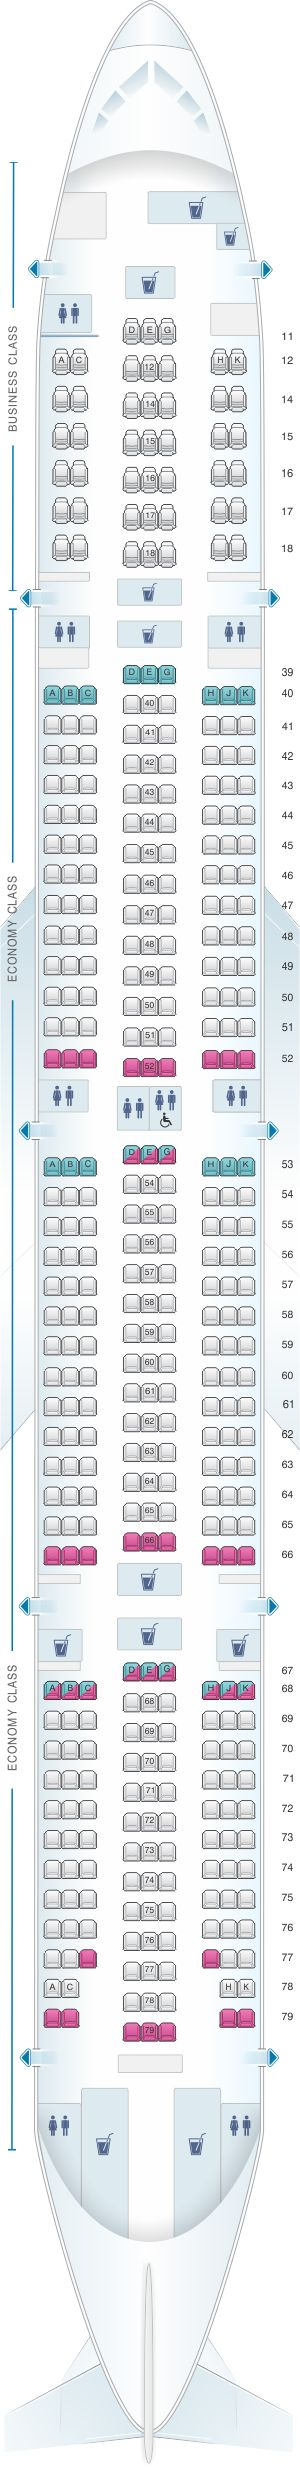 Seat Map Cathay Pacific Airways Boeing B777 300 (773)